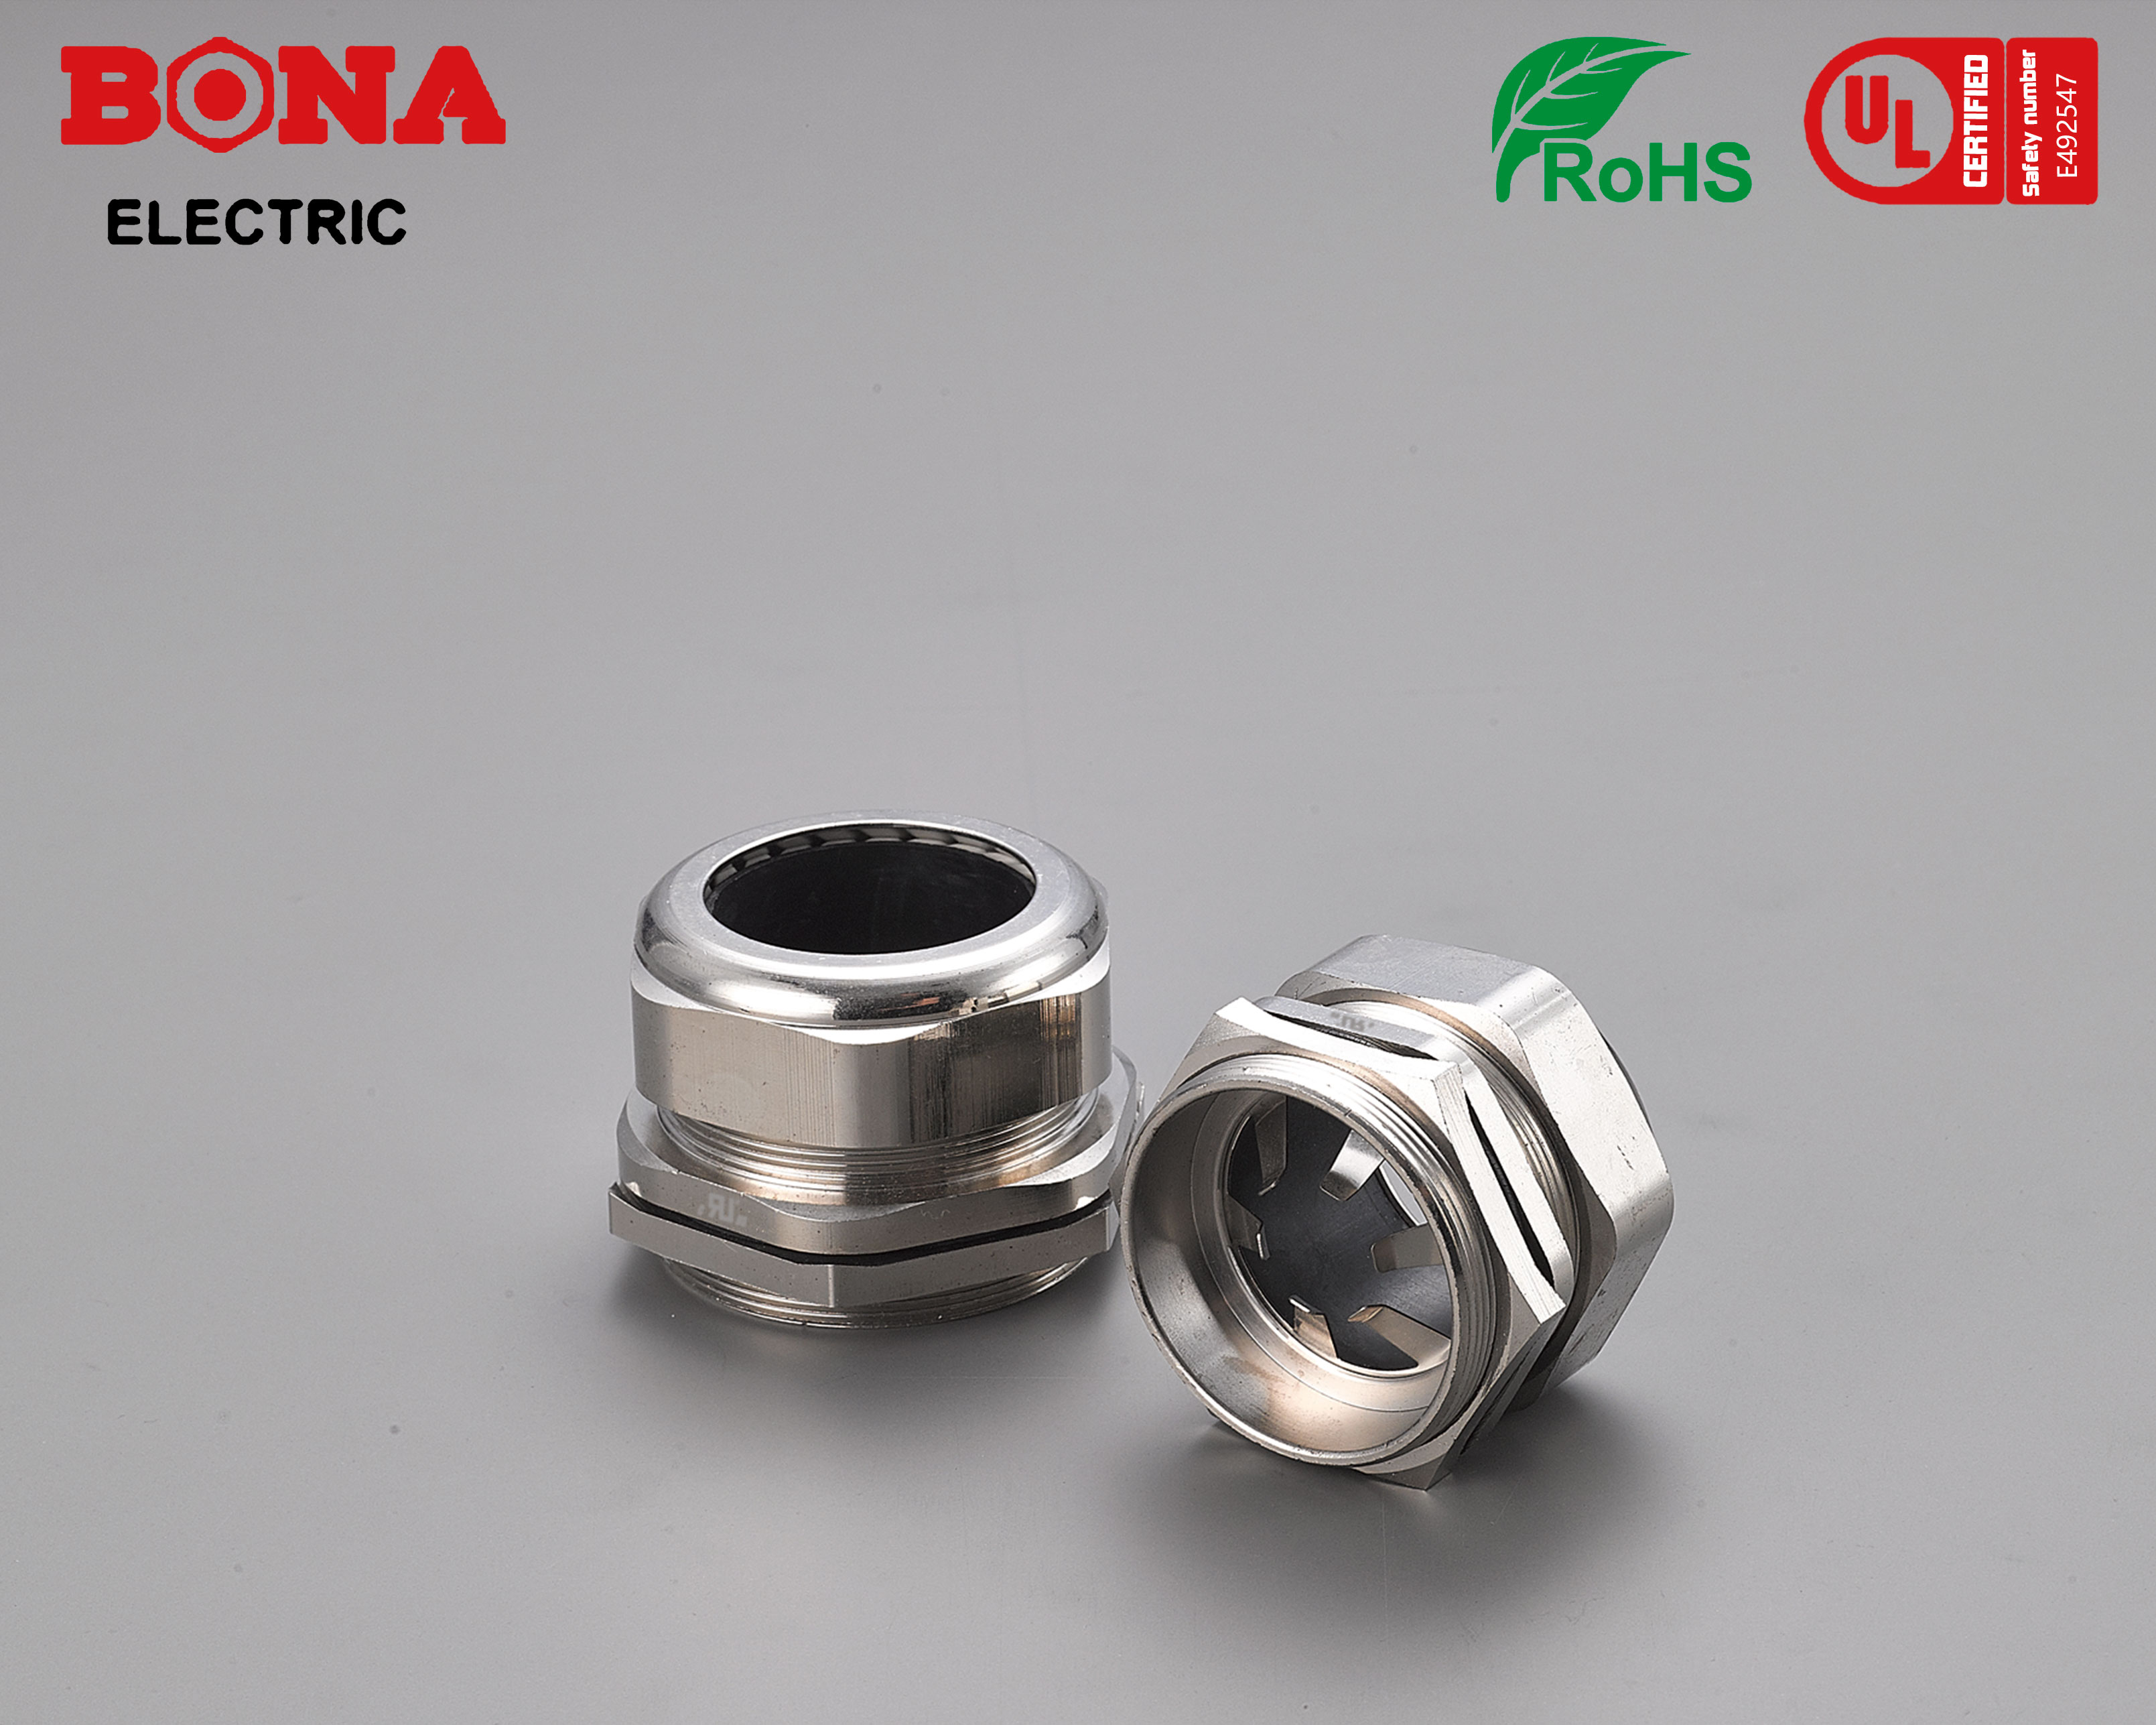 EMC Metal Cable Glands UL E492547